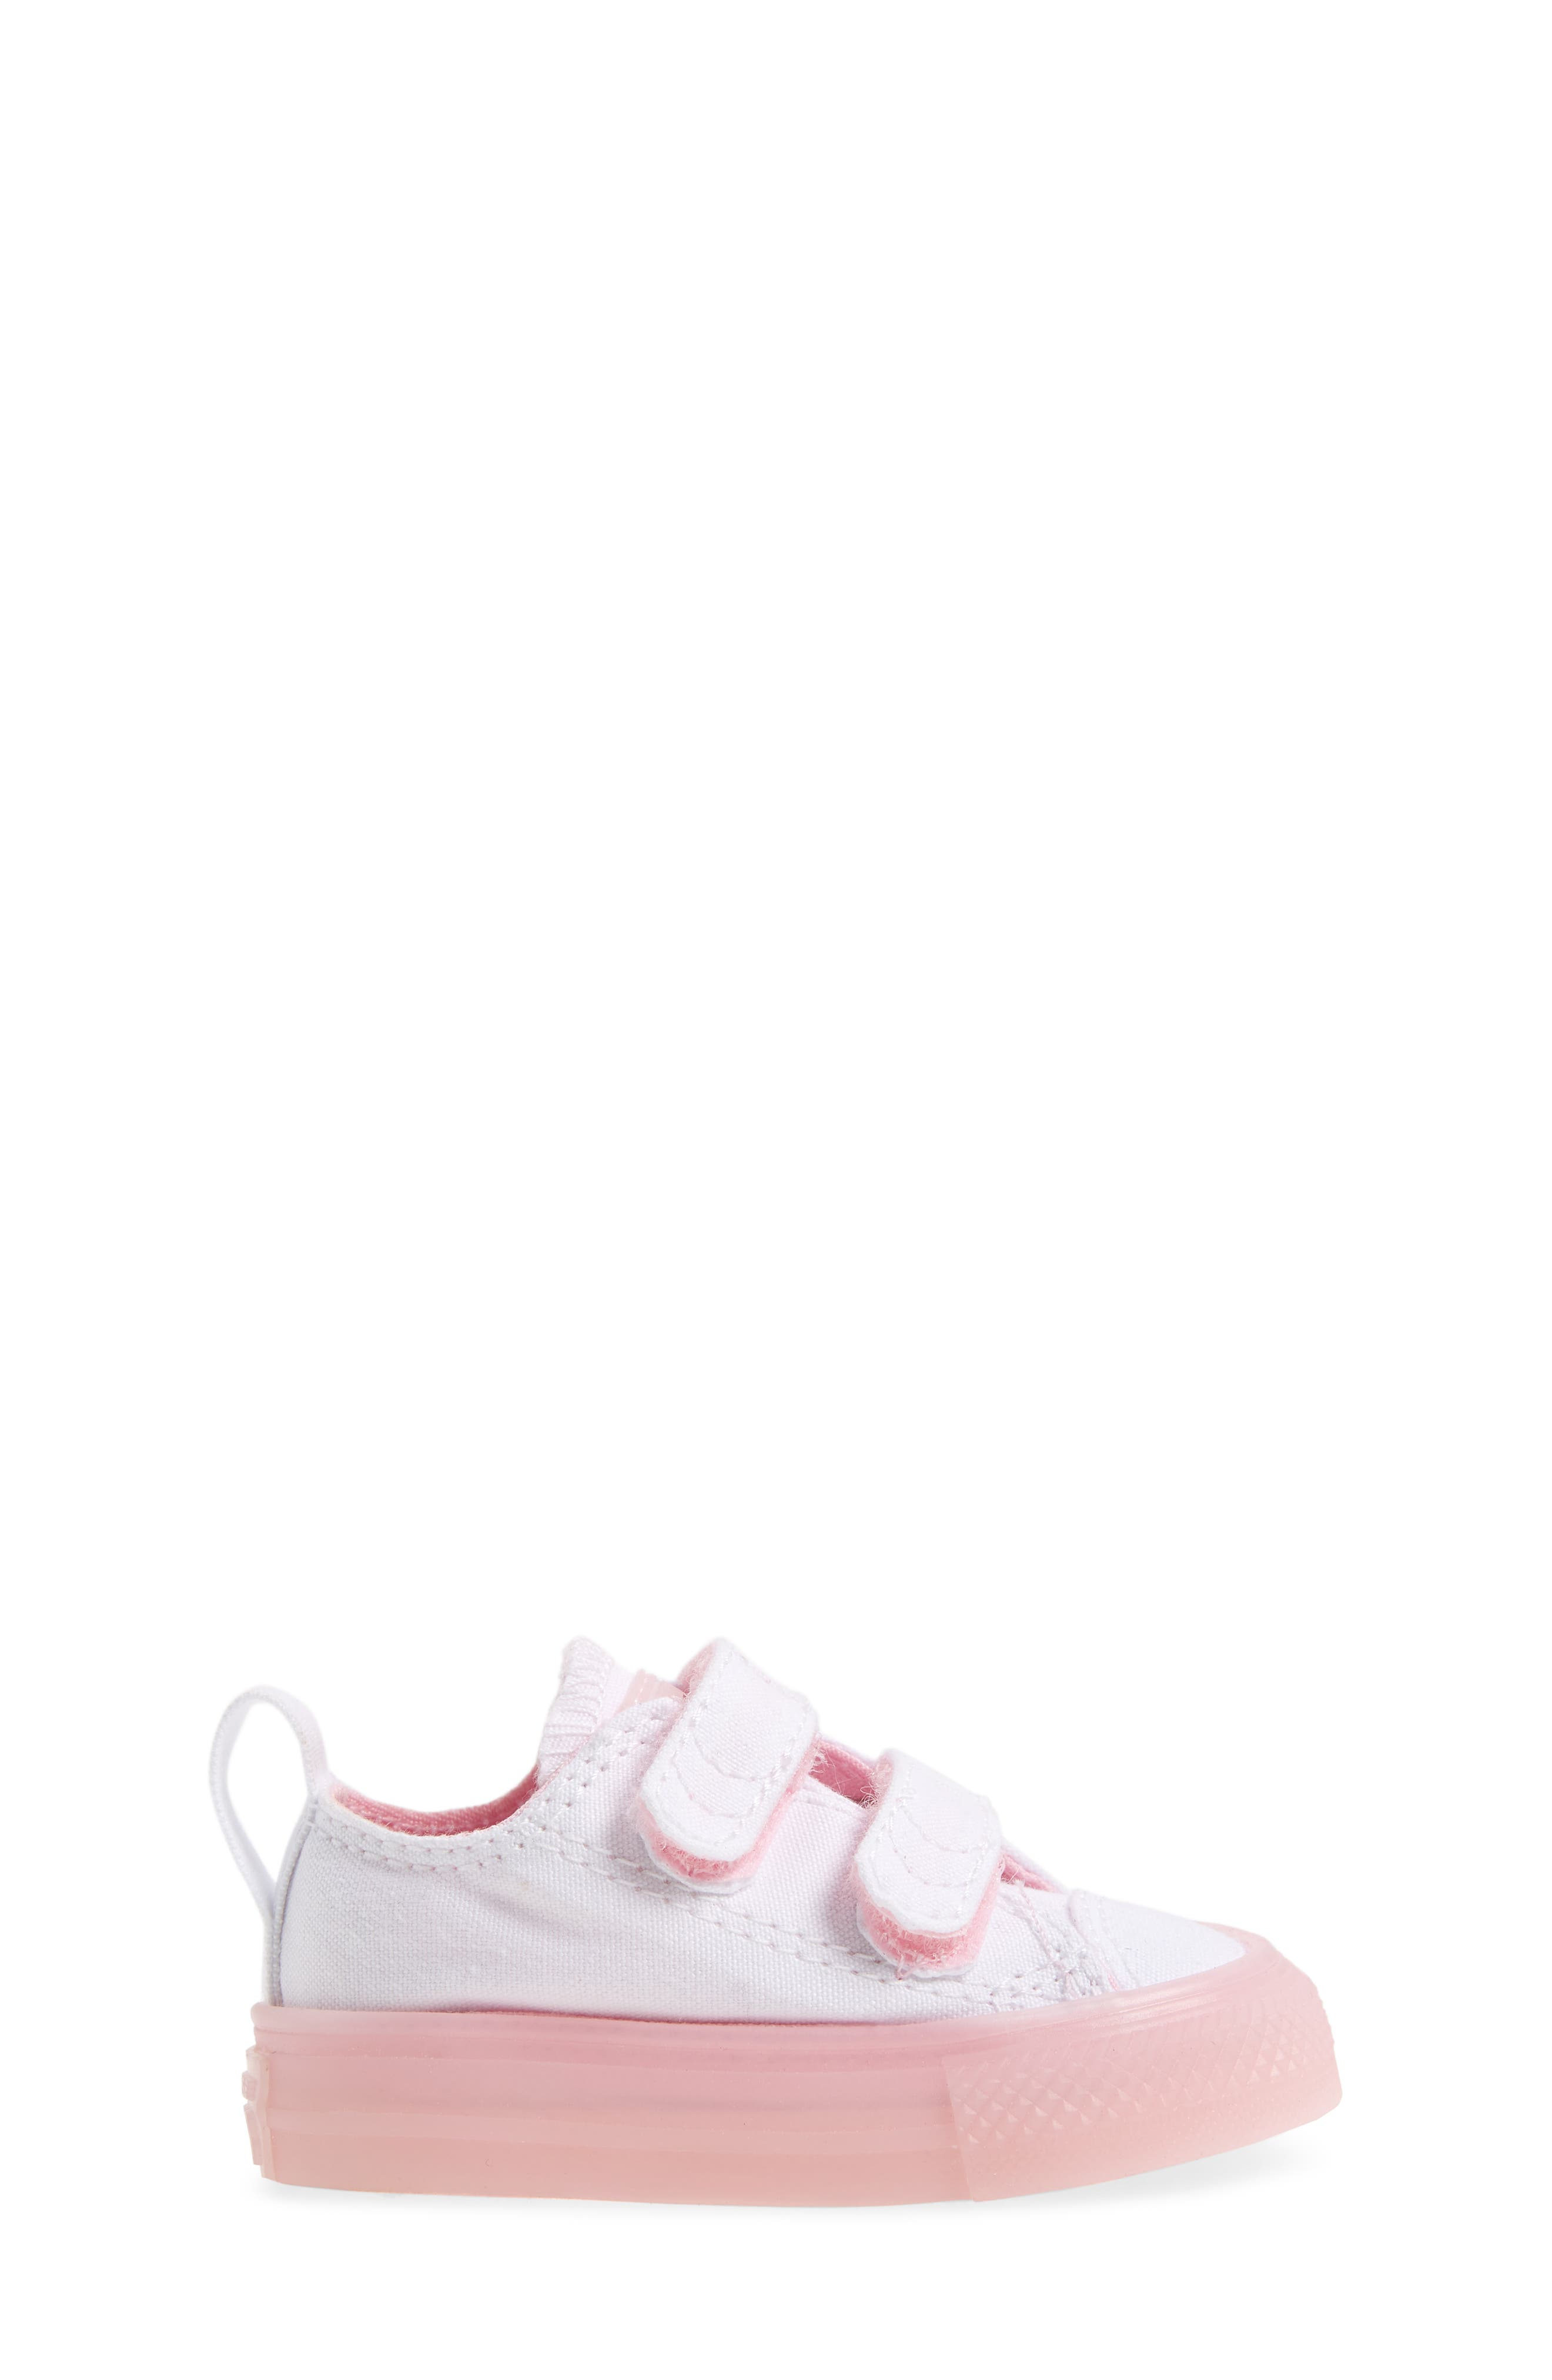 Chuck Taylor<sup>®</sup> All Star<sup>®</sup> Jelly Sneaker,                             Alternate thumbnail 3, color,                             White/ Cherry